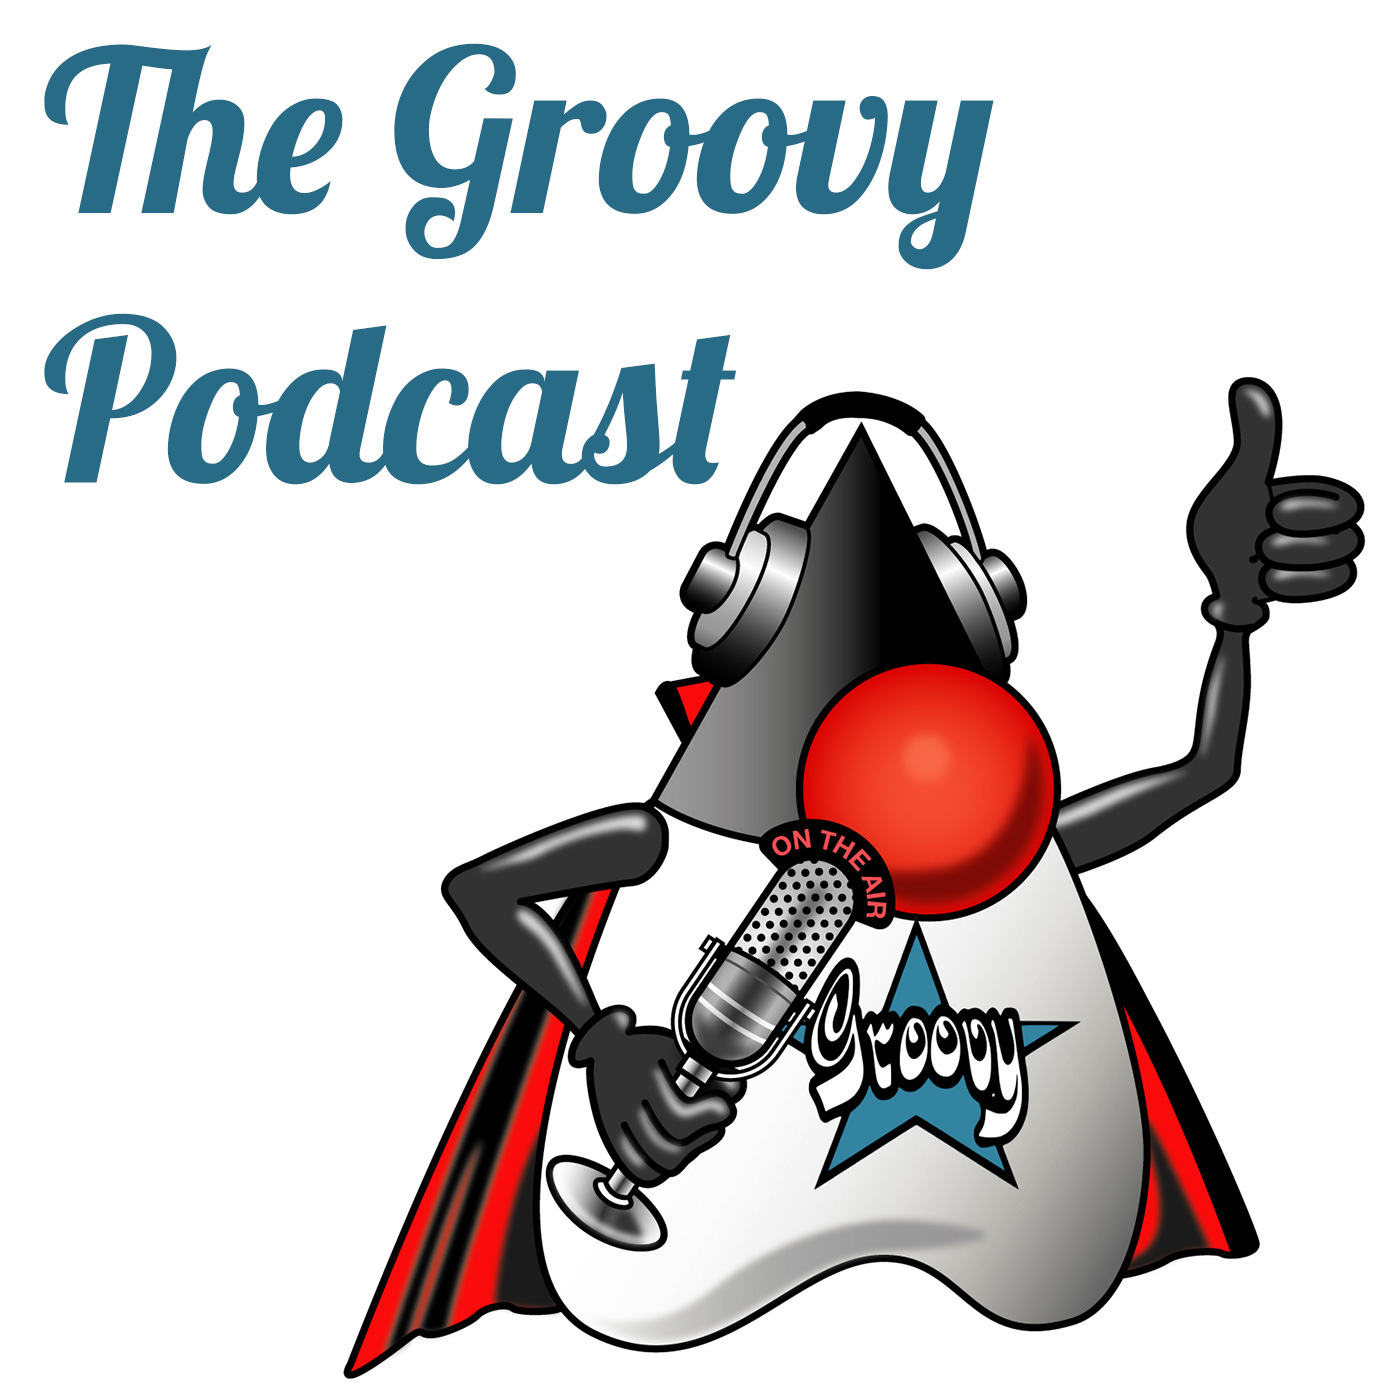 provide 230 episodes downloads for your podcast